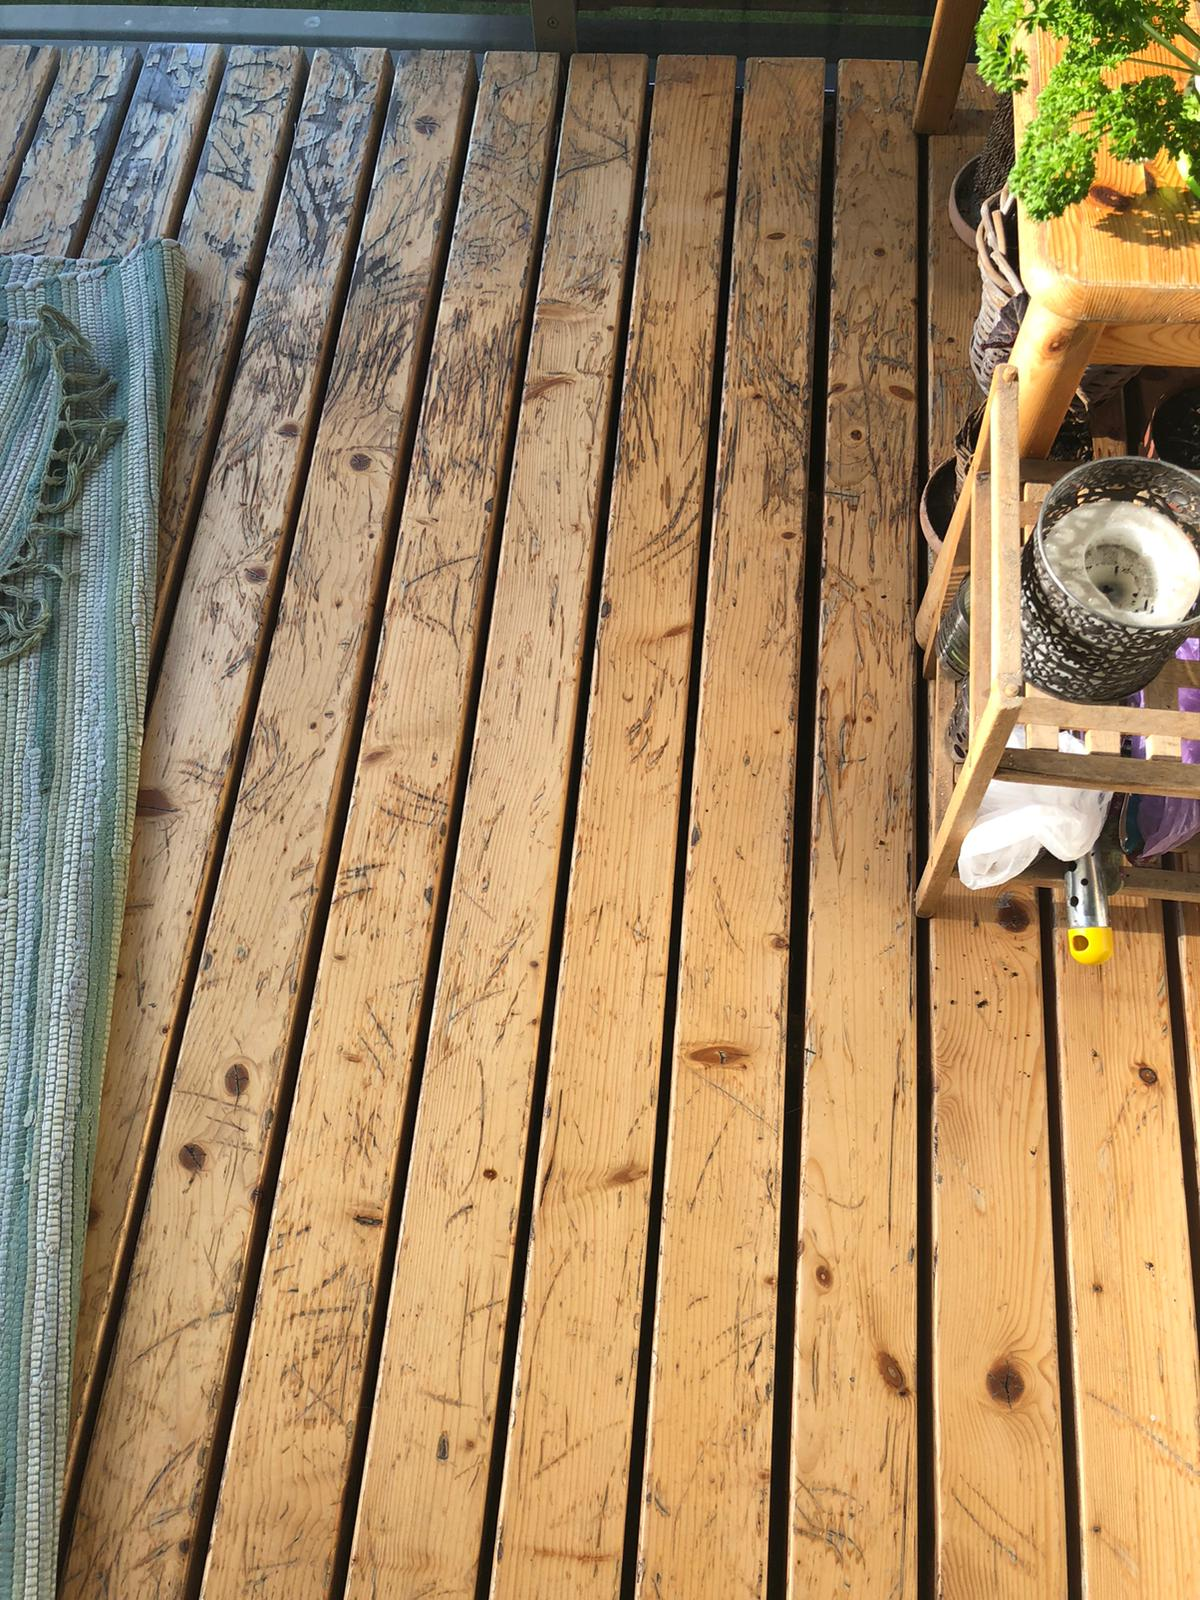 Balcony and terrace floor lubrication and cleaning